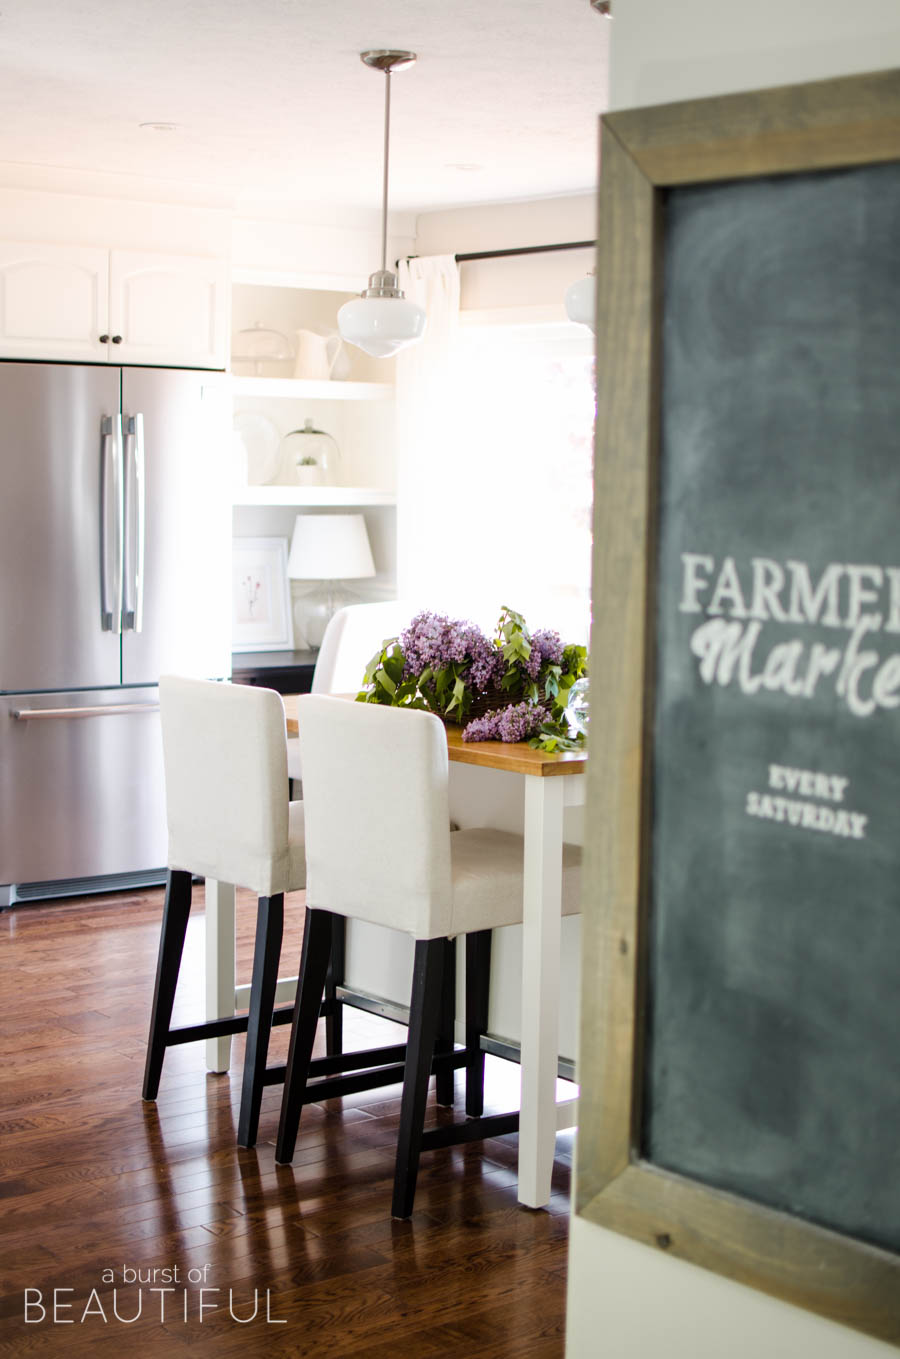 This beautiful modern farmhouse welcomes summer in